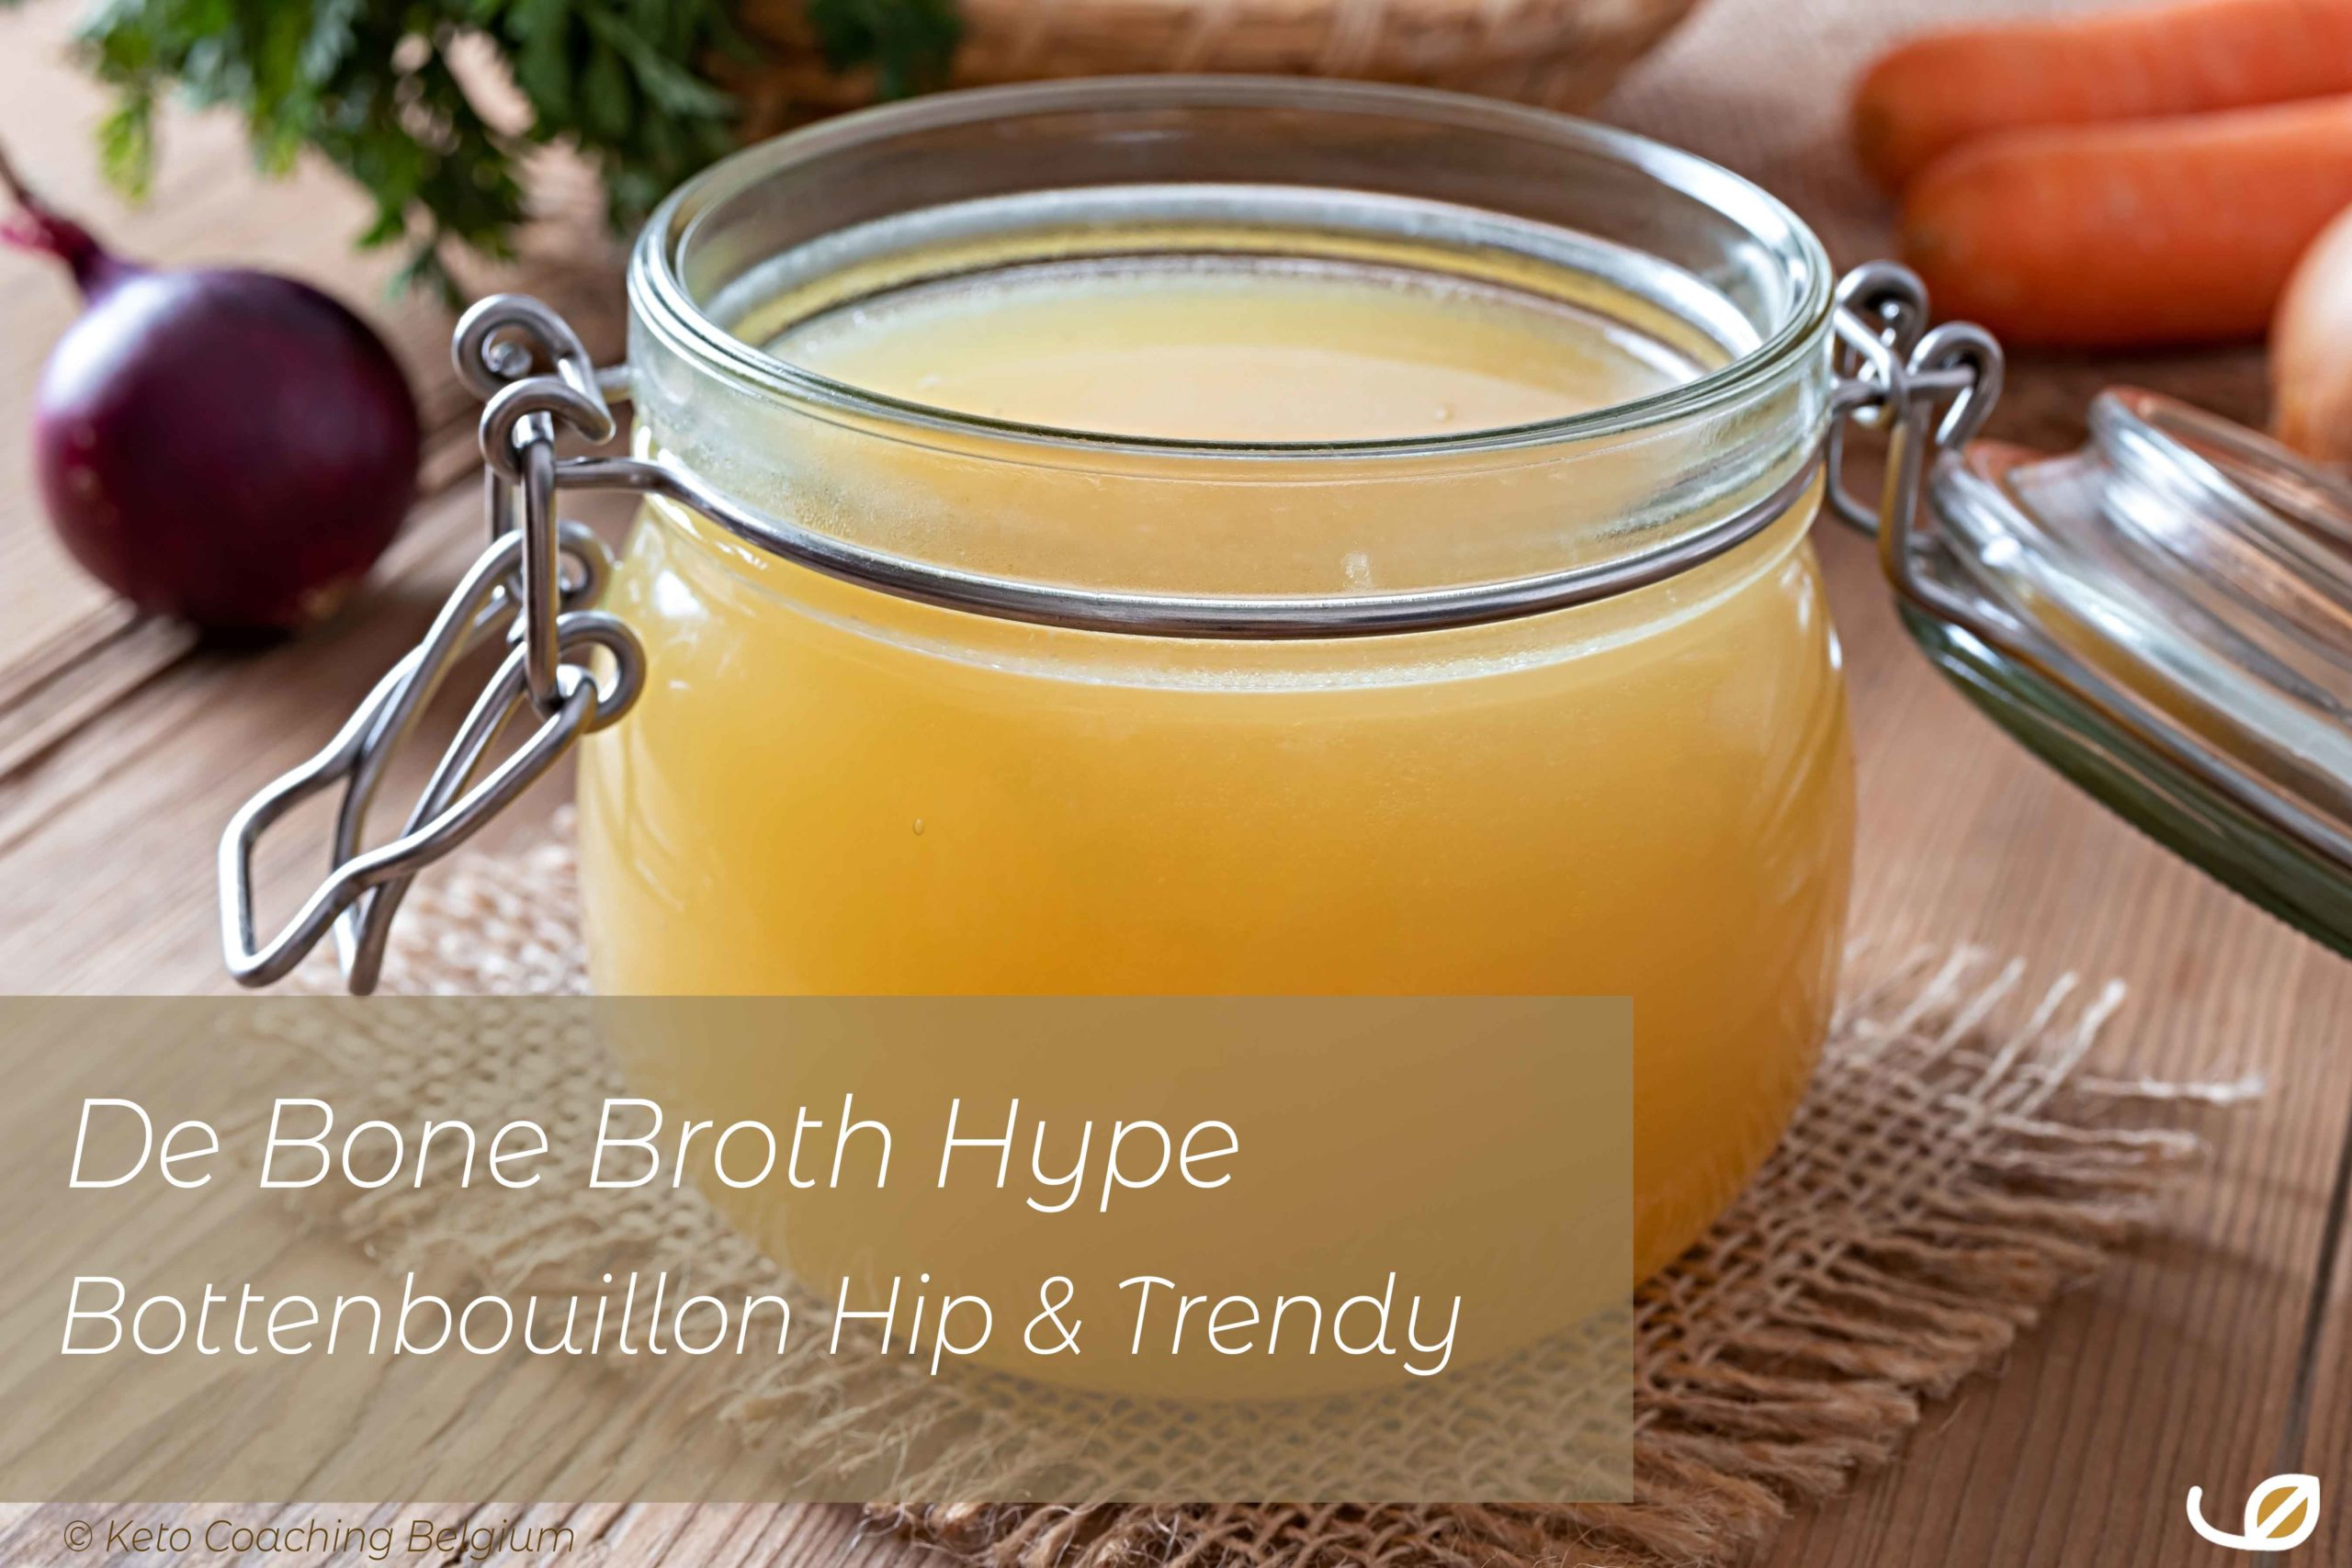 de Bone Broth Hype Bottenbouillon Hip en Trendy